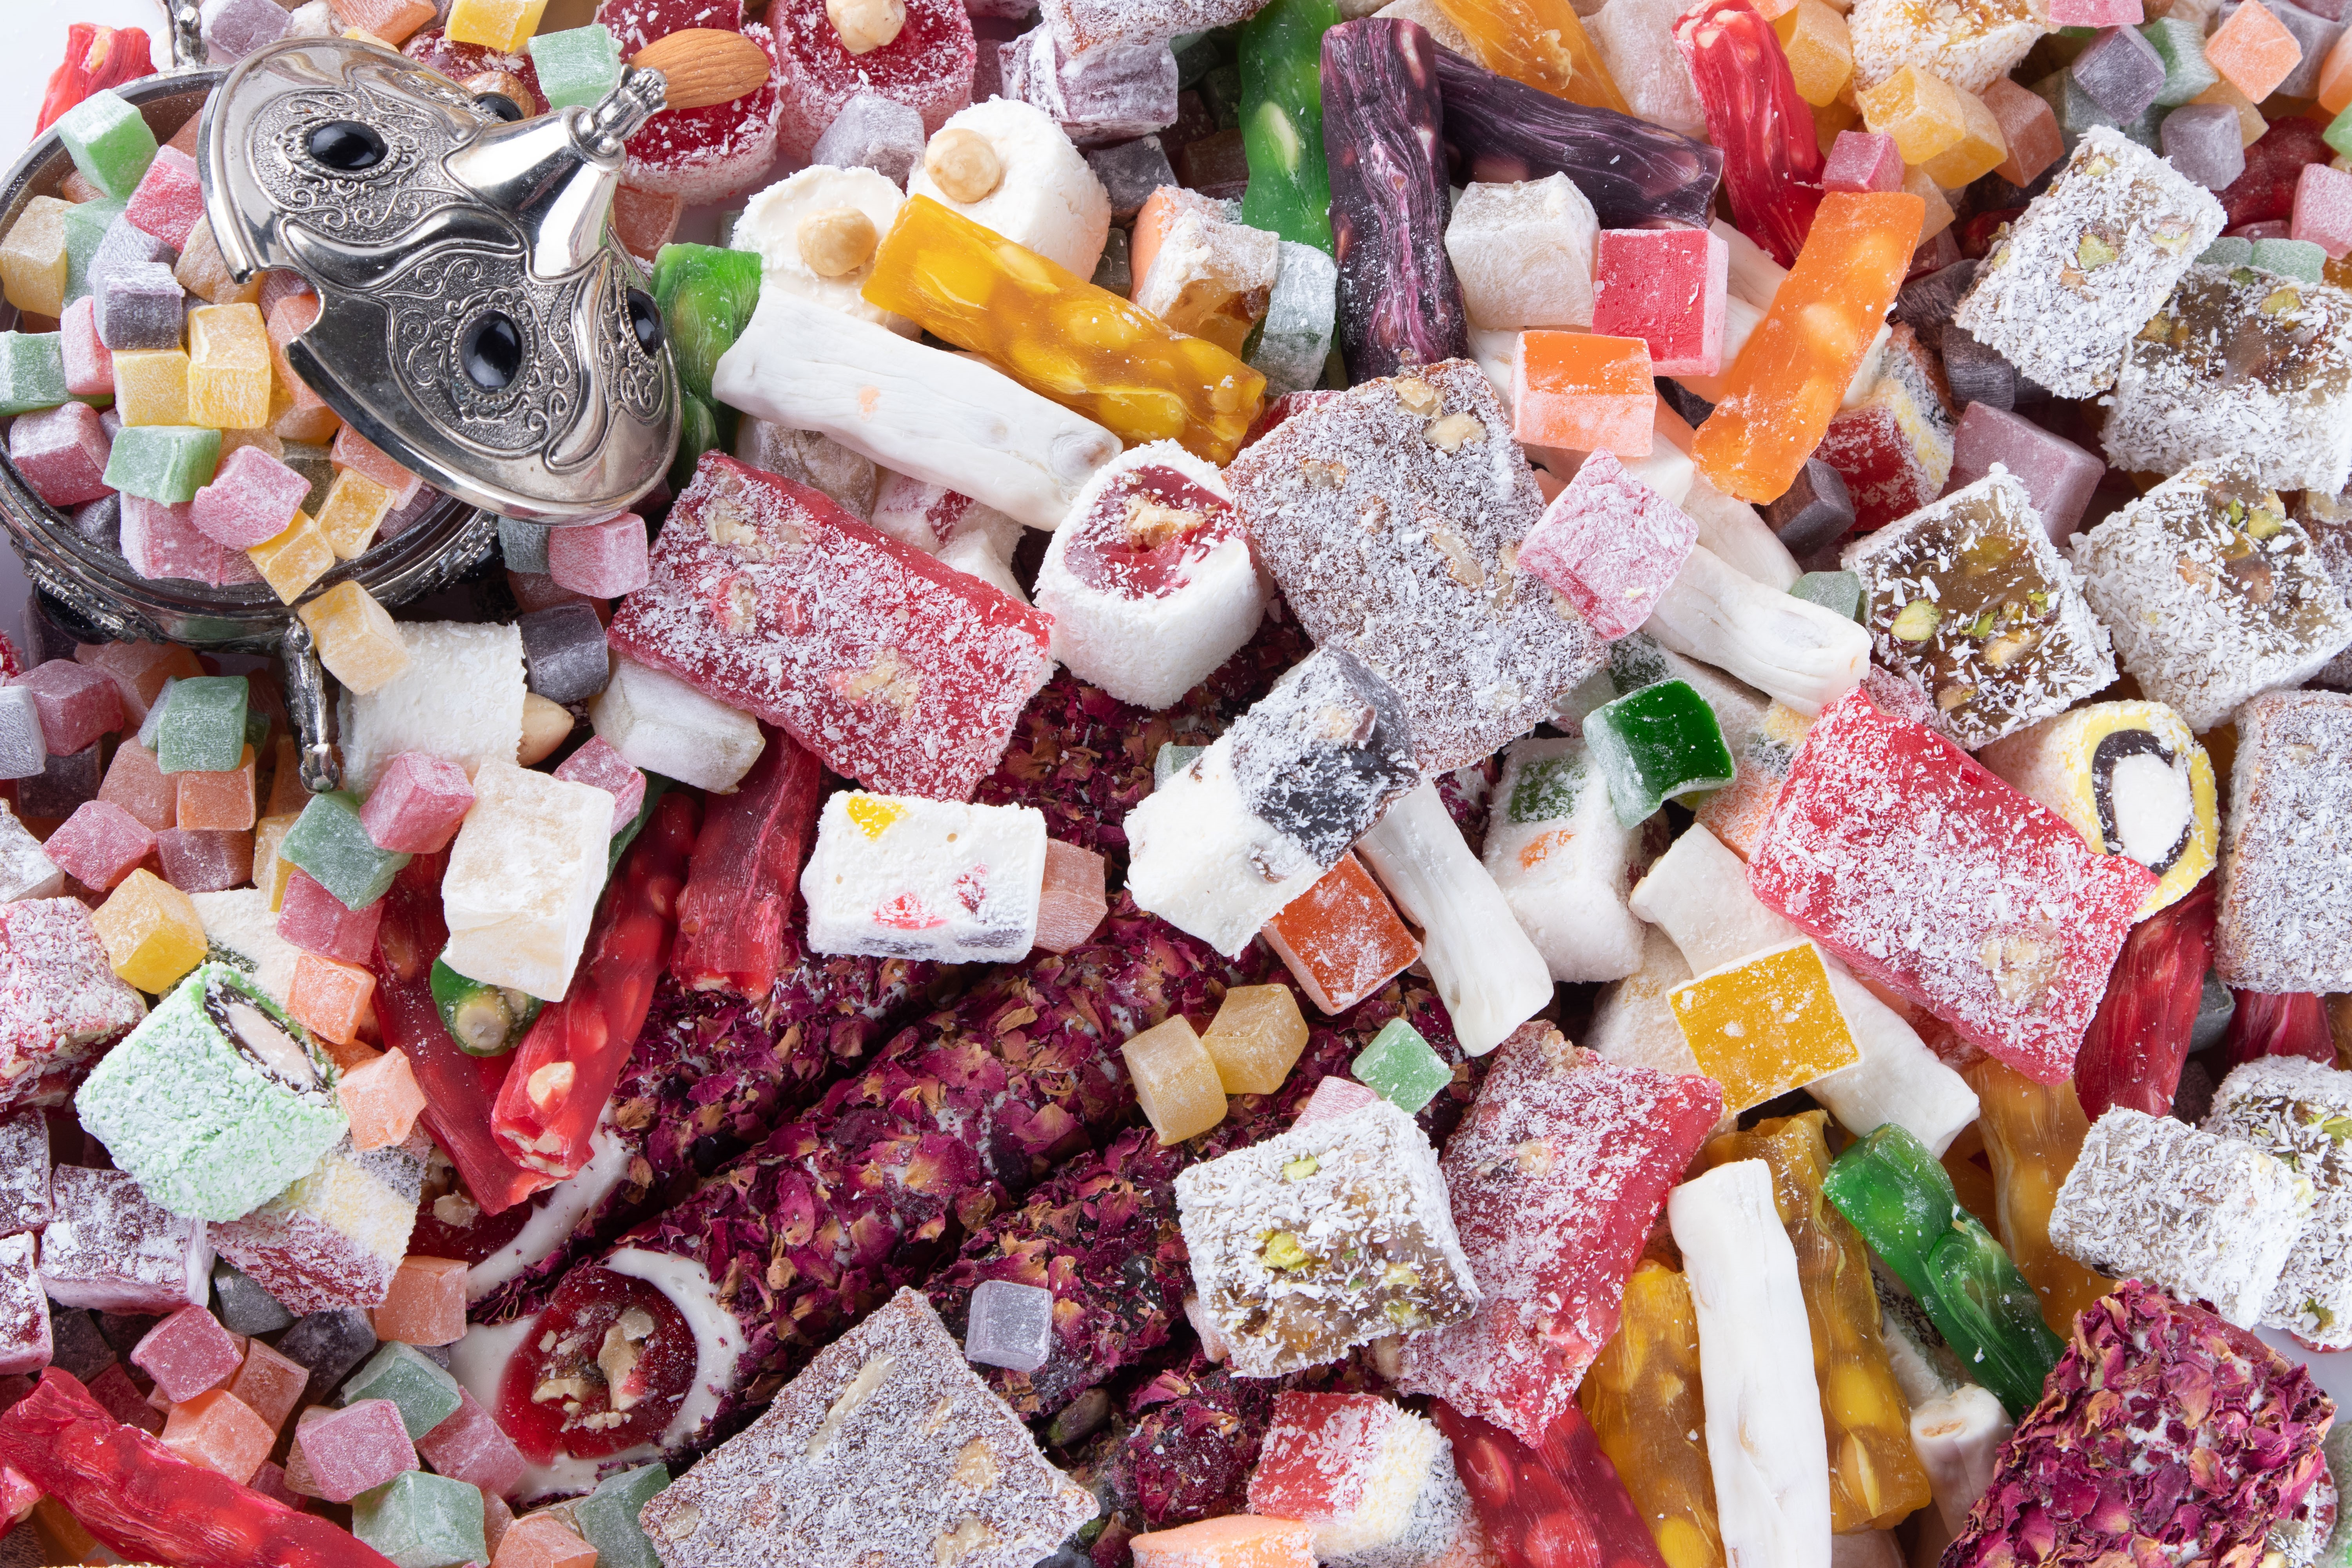 About the benefits of Turkish delight